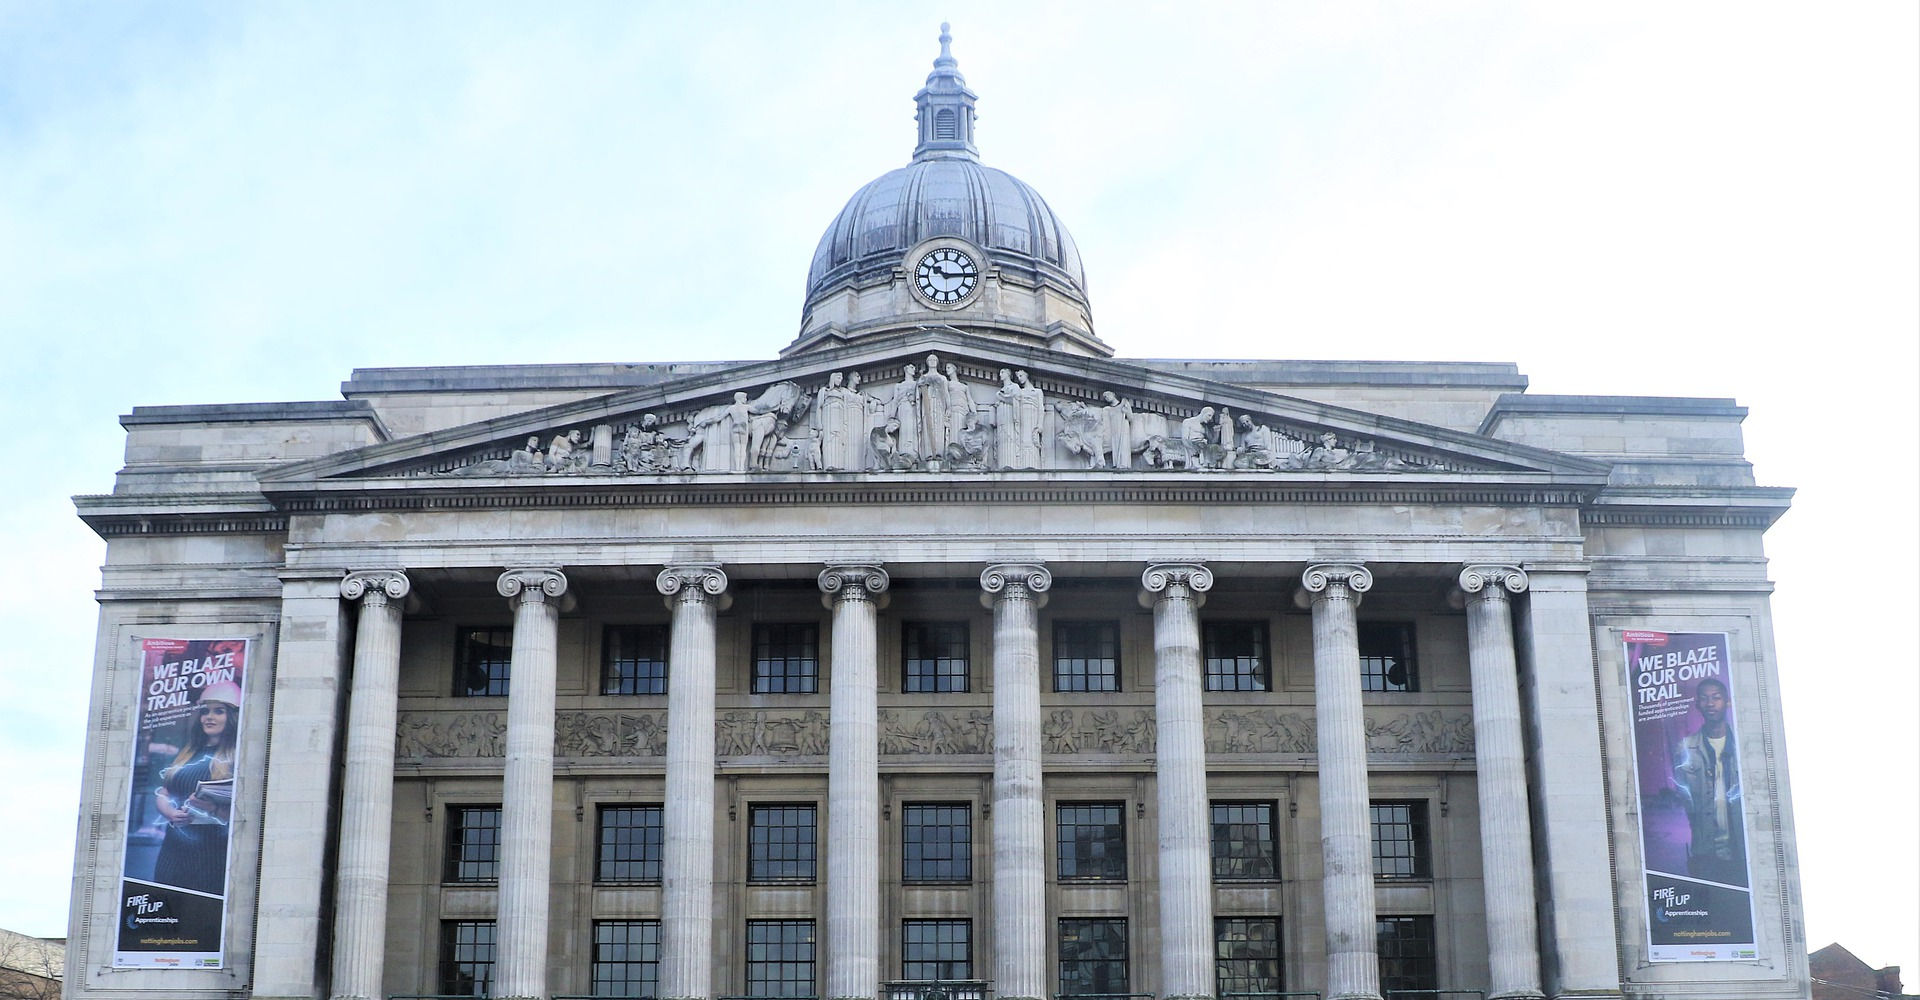 An image of the Nottingham Council House